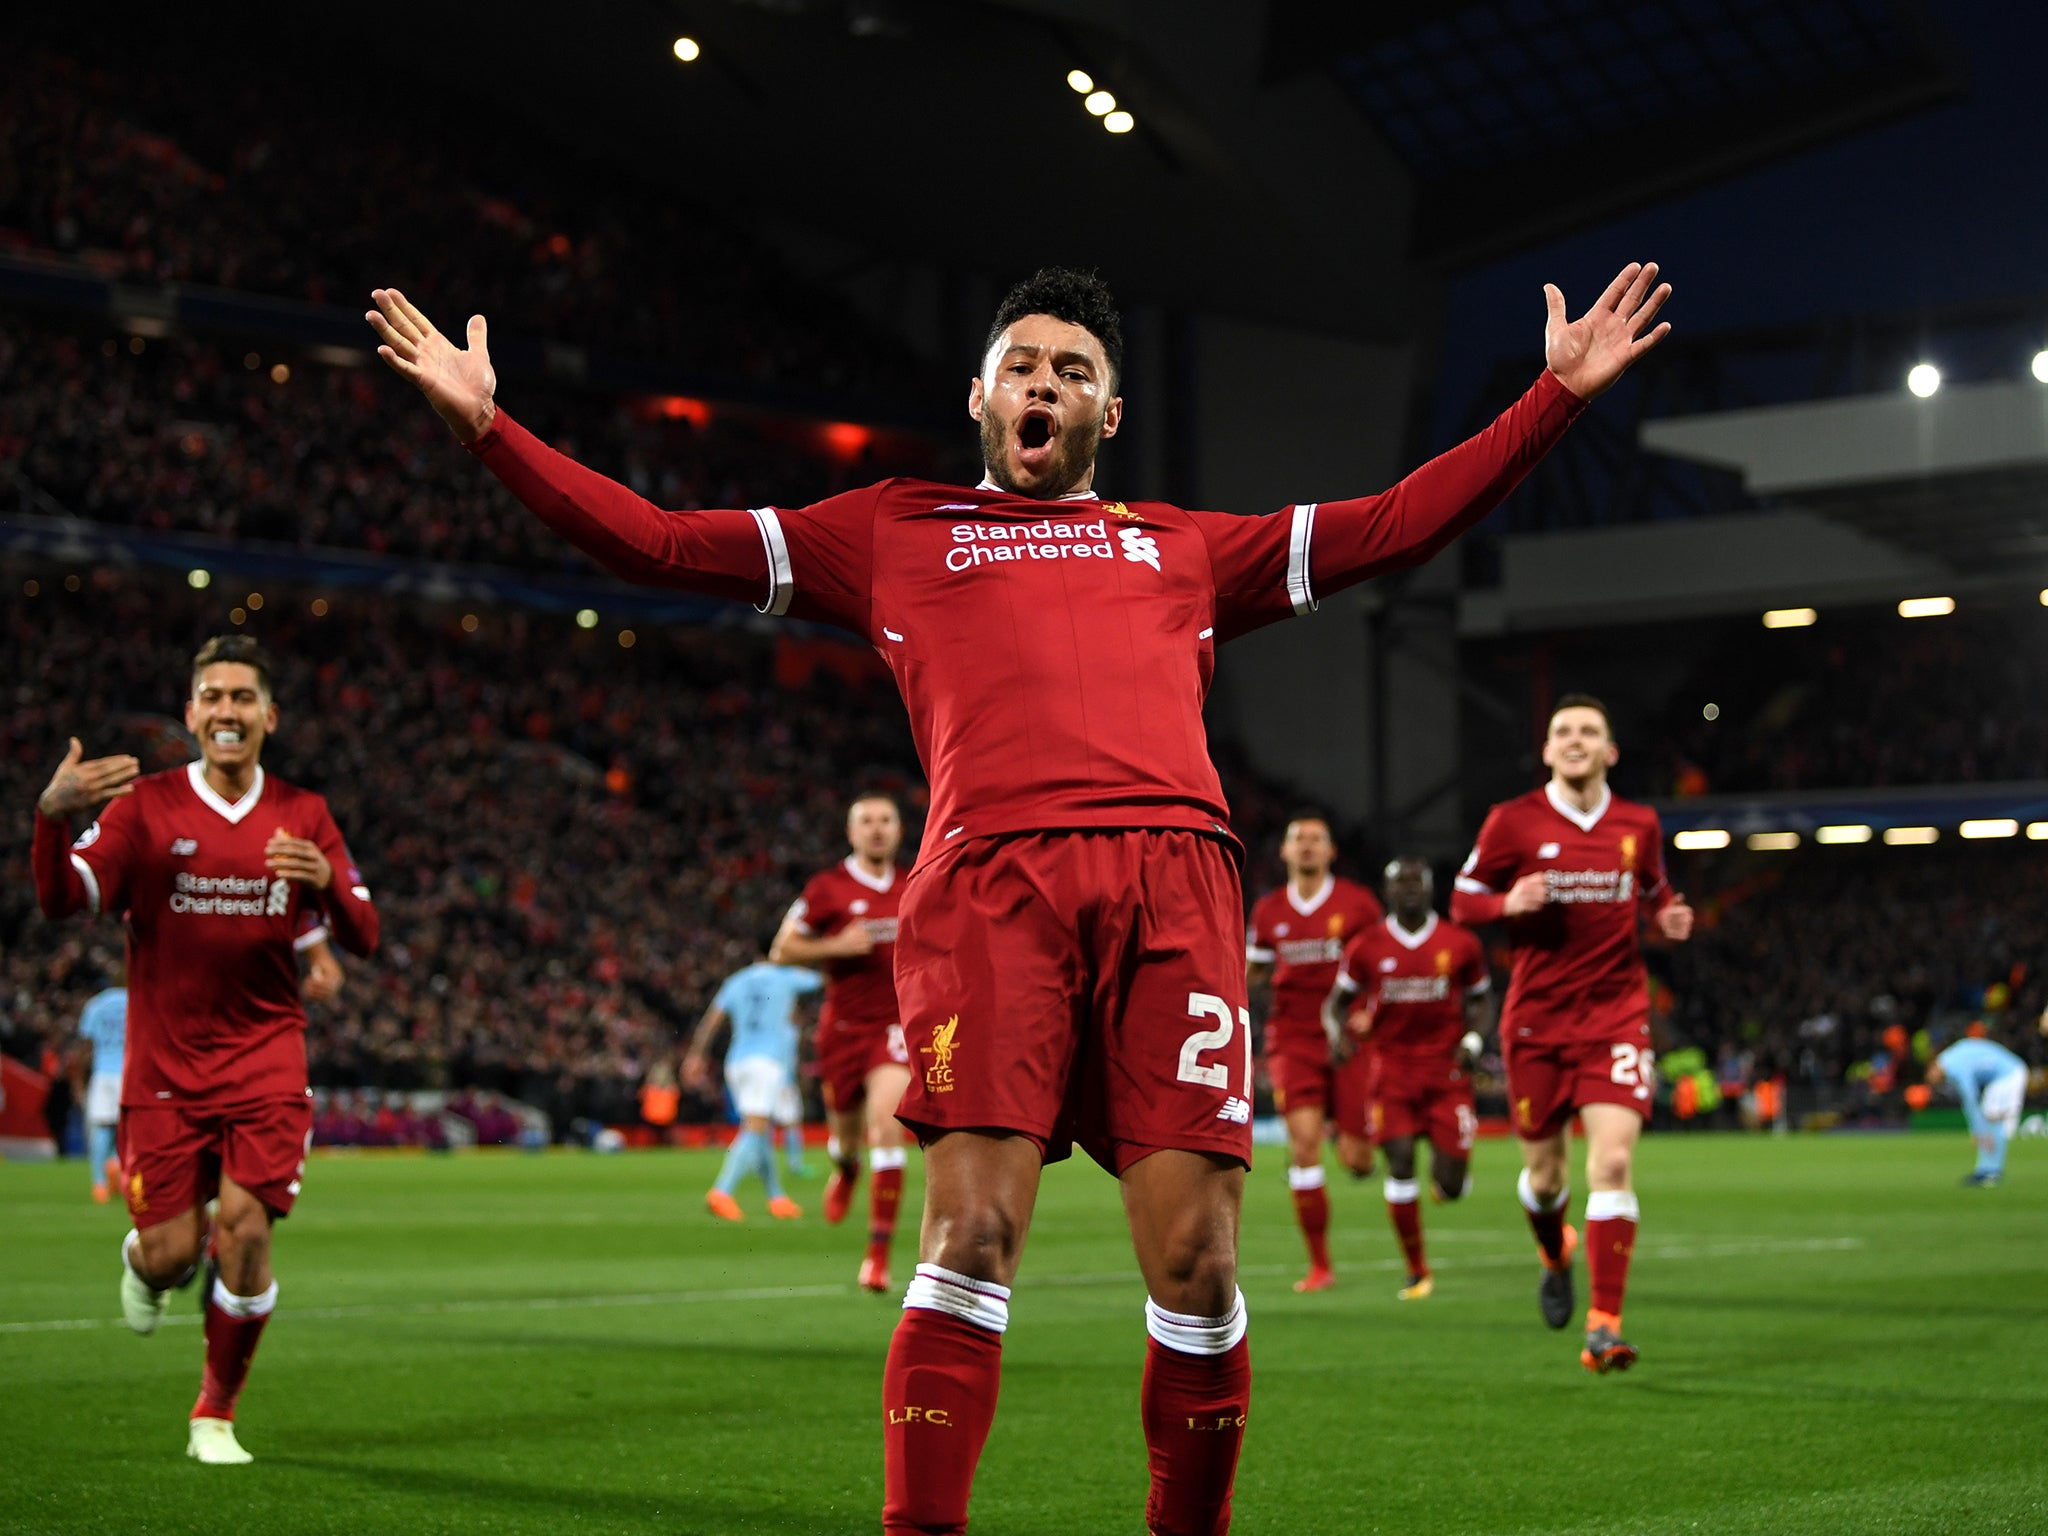 Liverpool's Alex Oxlade-Chamberlain Has Transformed His